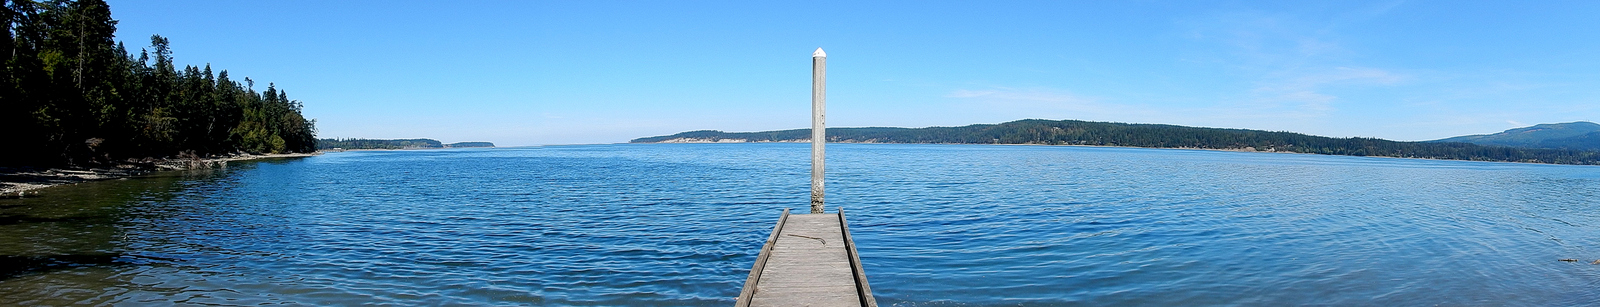 Sequim Bay State Park boat launch dock